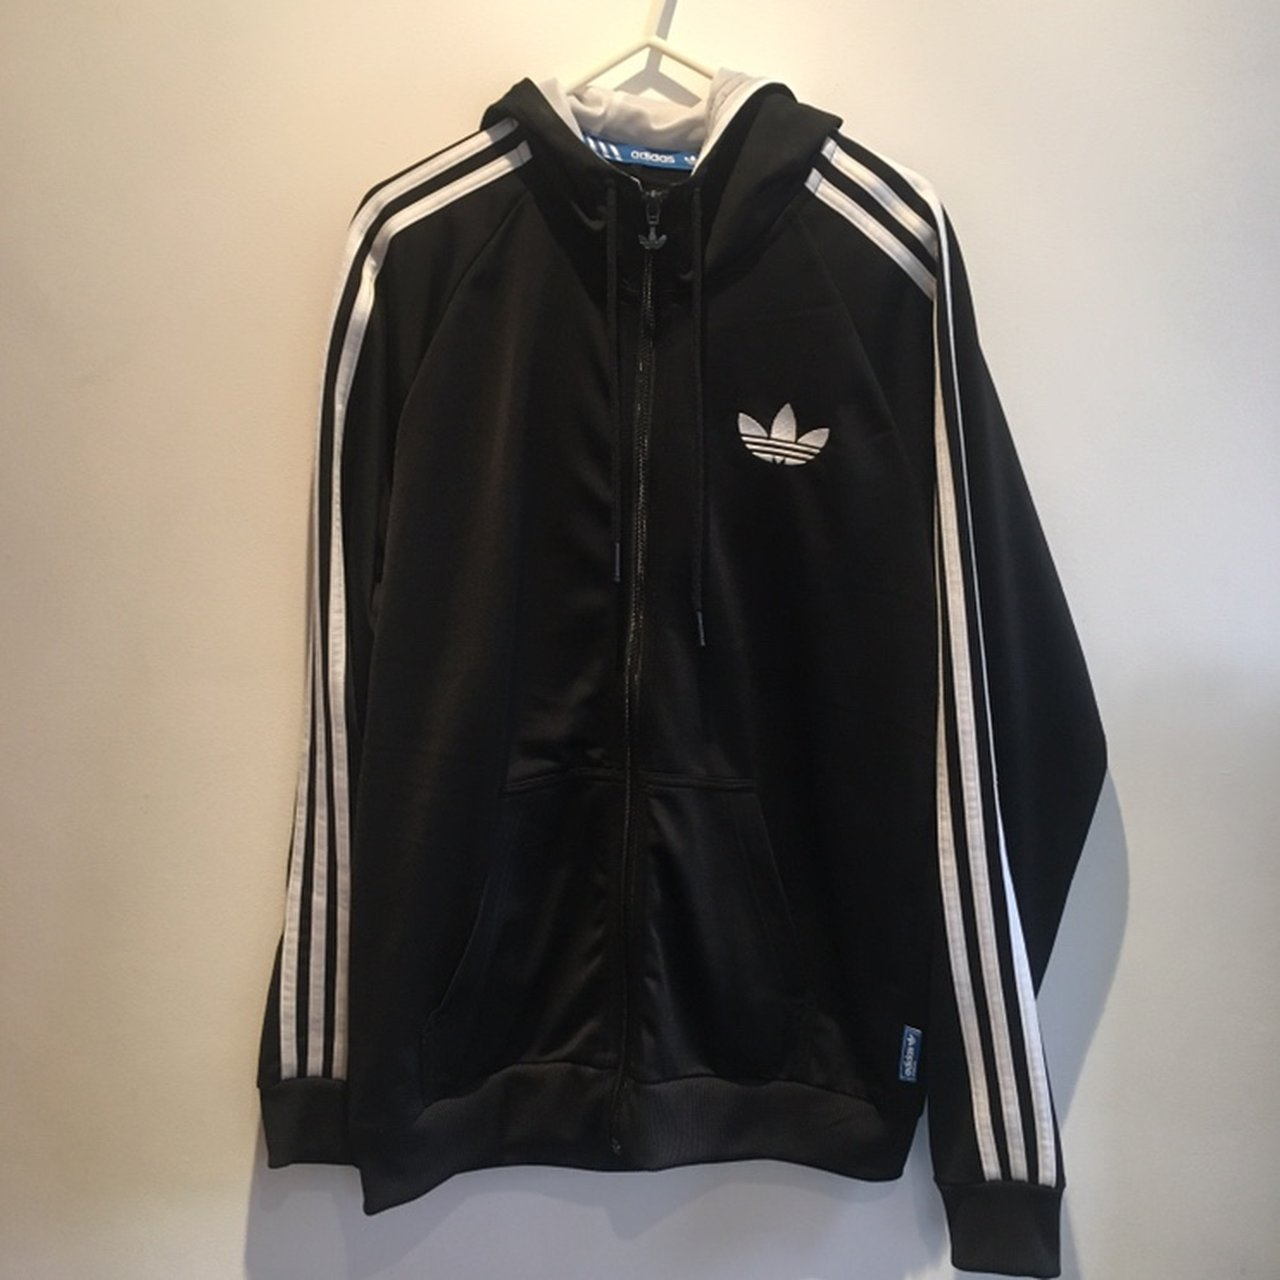 Adidas track jacket 10 10 condition 04578f2f562a